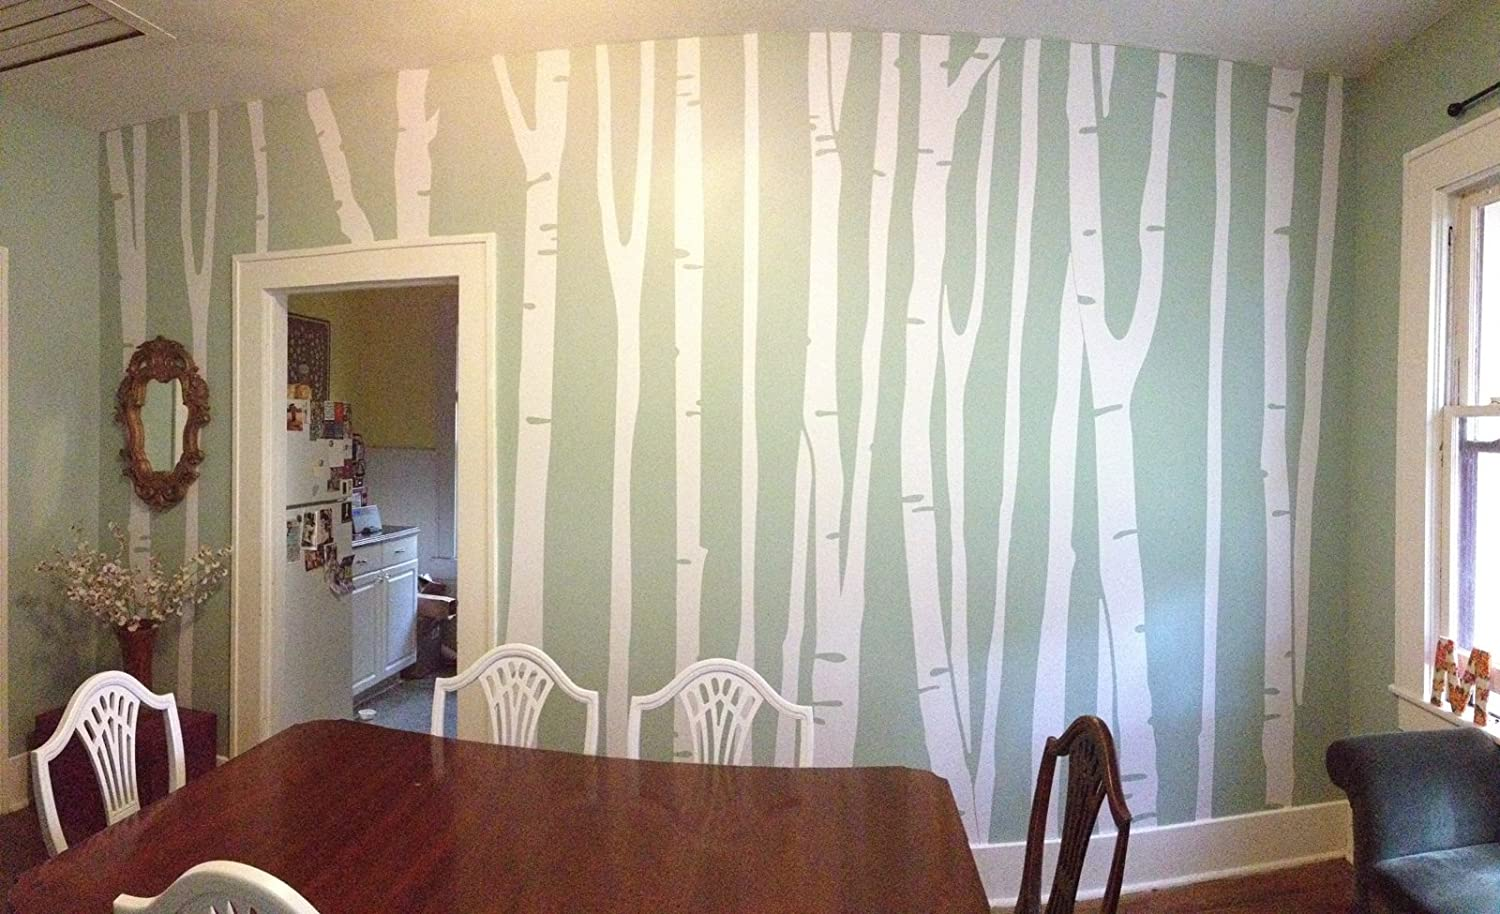 large wall birch tree decal forest kids vinyl sticker removable 9 large wall birch tree decal forest kids vinyl sticker removable 9 trees 84